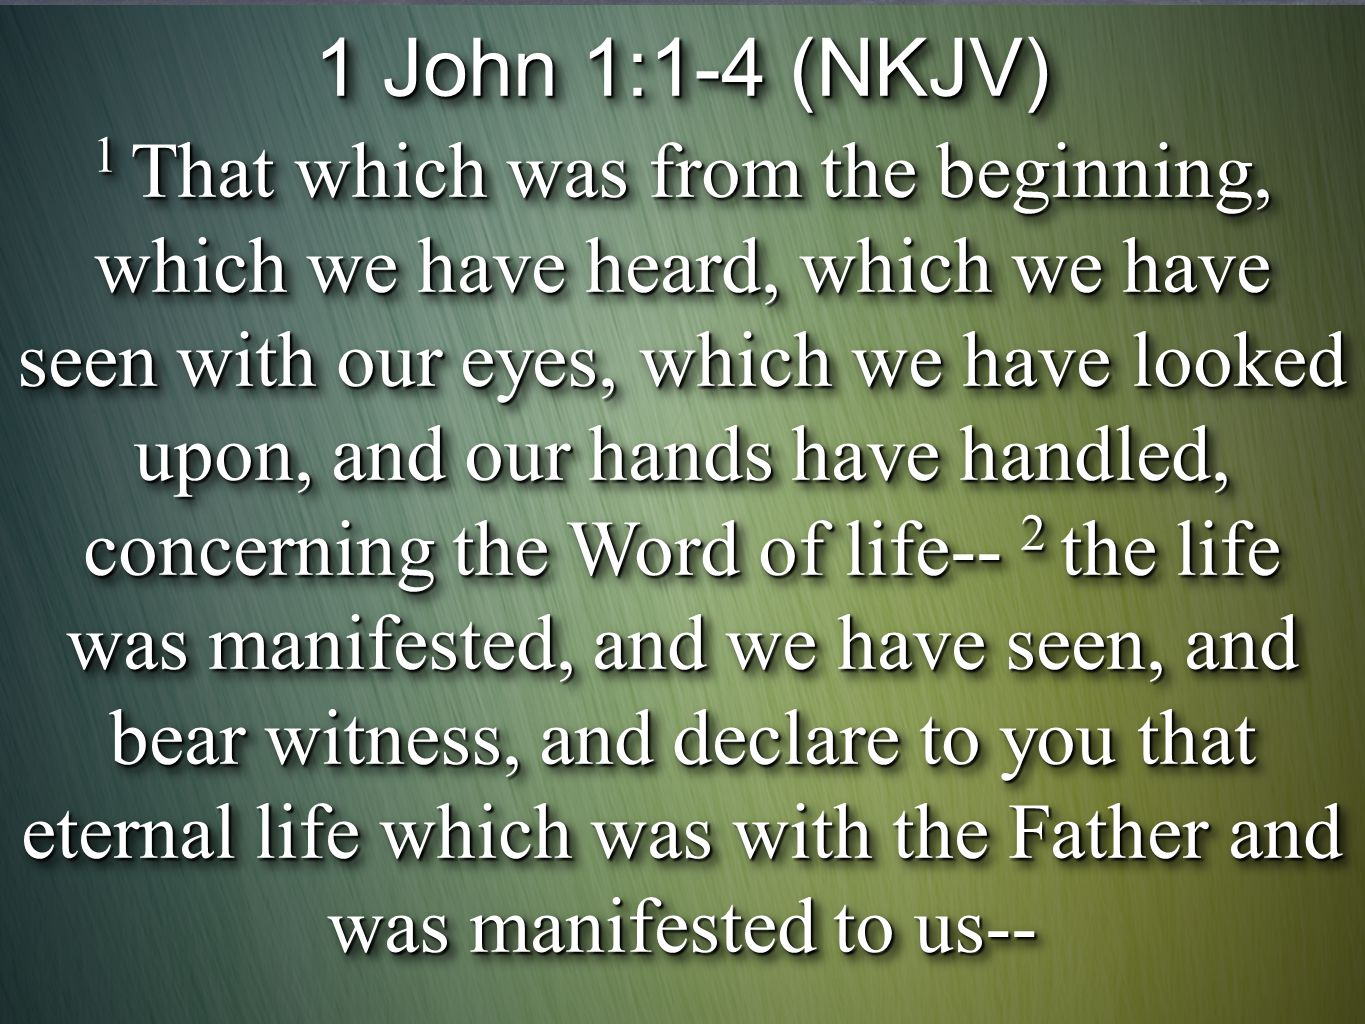 1 John 1:1-4 (NKJV) 1 That which was from the beginning, which we have heard, which we have seen with our eyes, which we have looked upon, and our hands have handled, concerning the Word of life-- 2 the life was manifested, and we have seen, and bear witness, and declare to you that eternal life which was with the Father and was manifested to us-- 1 John 1:1-4 (NKJV) 1 That which was from the beginning, which we have heard, which we have seen with our eyes, which we have looked upon, and our hands have handled, concerning the Word of life-- 2 the life was manifested, and we have seen, and bear witness, and declare to you that eternal life which was with the Father and was manifested to us--